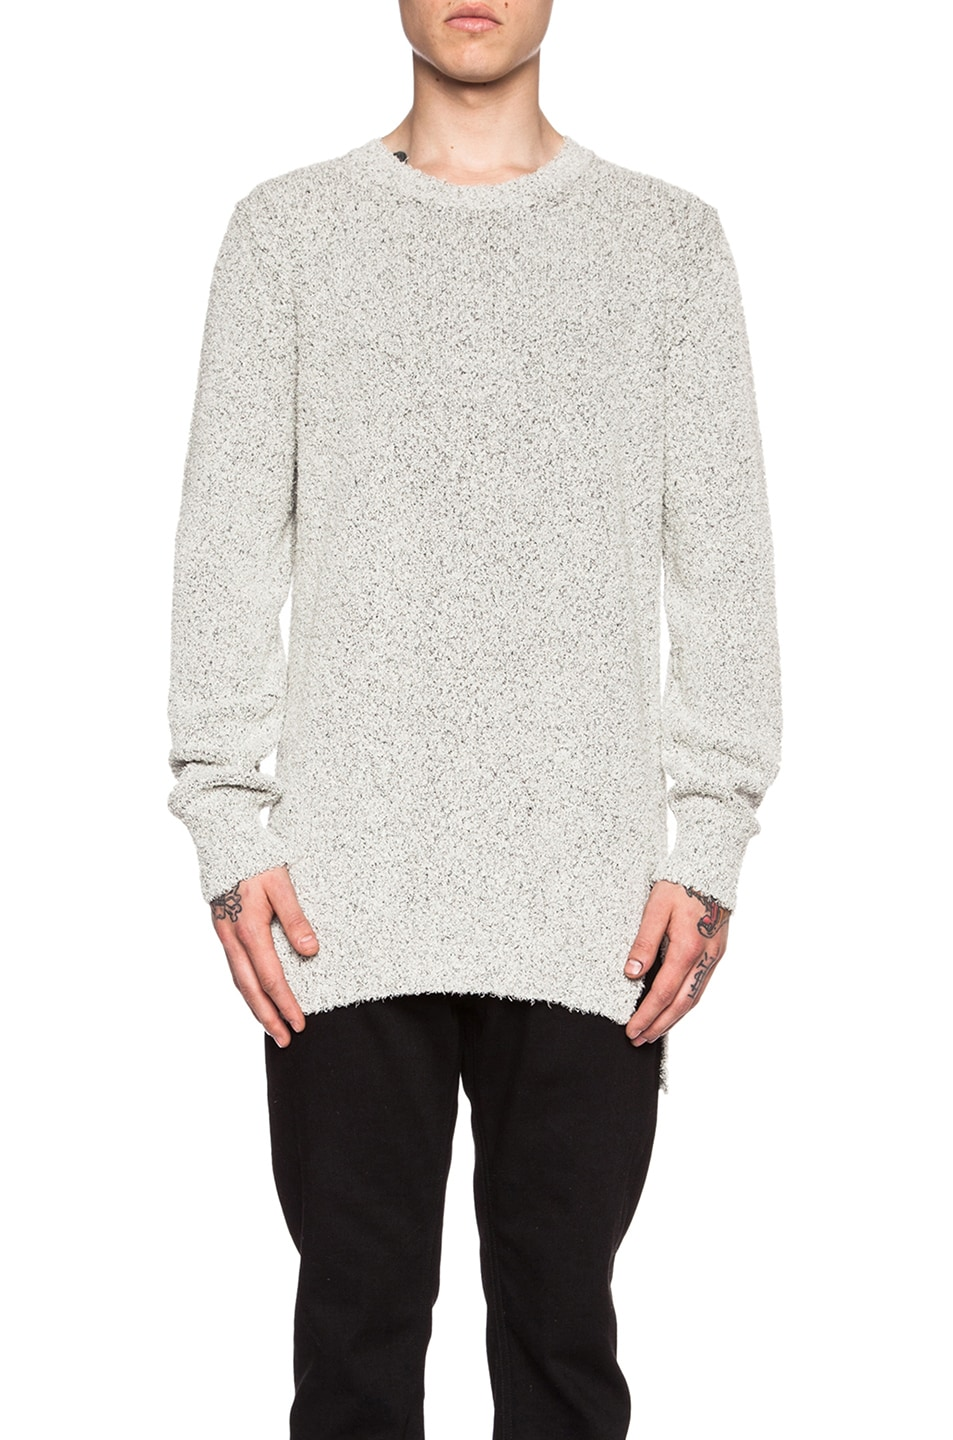 Maison Margiela Long Gauge Cotton-Blend Sweater in Grey | FWRD